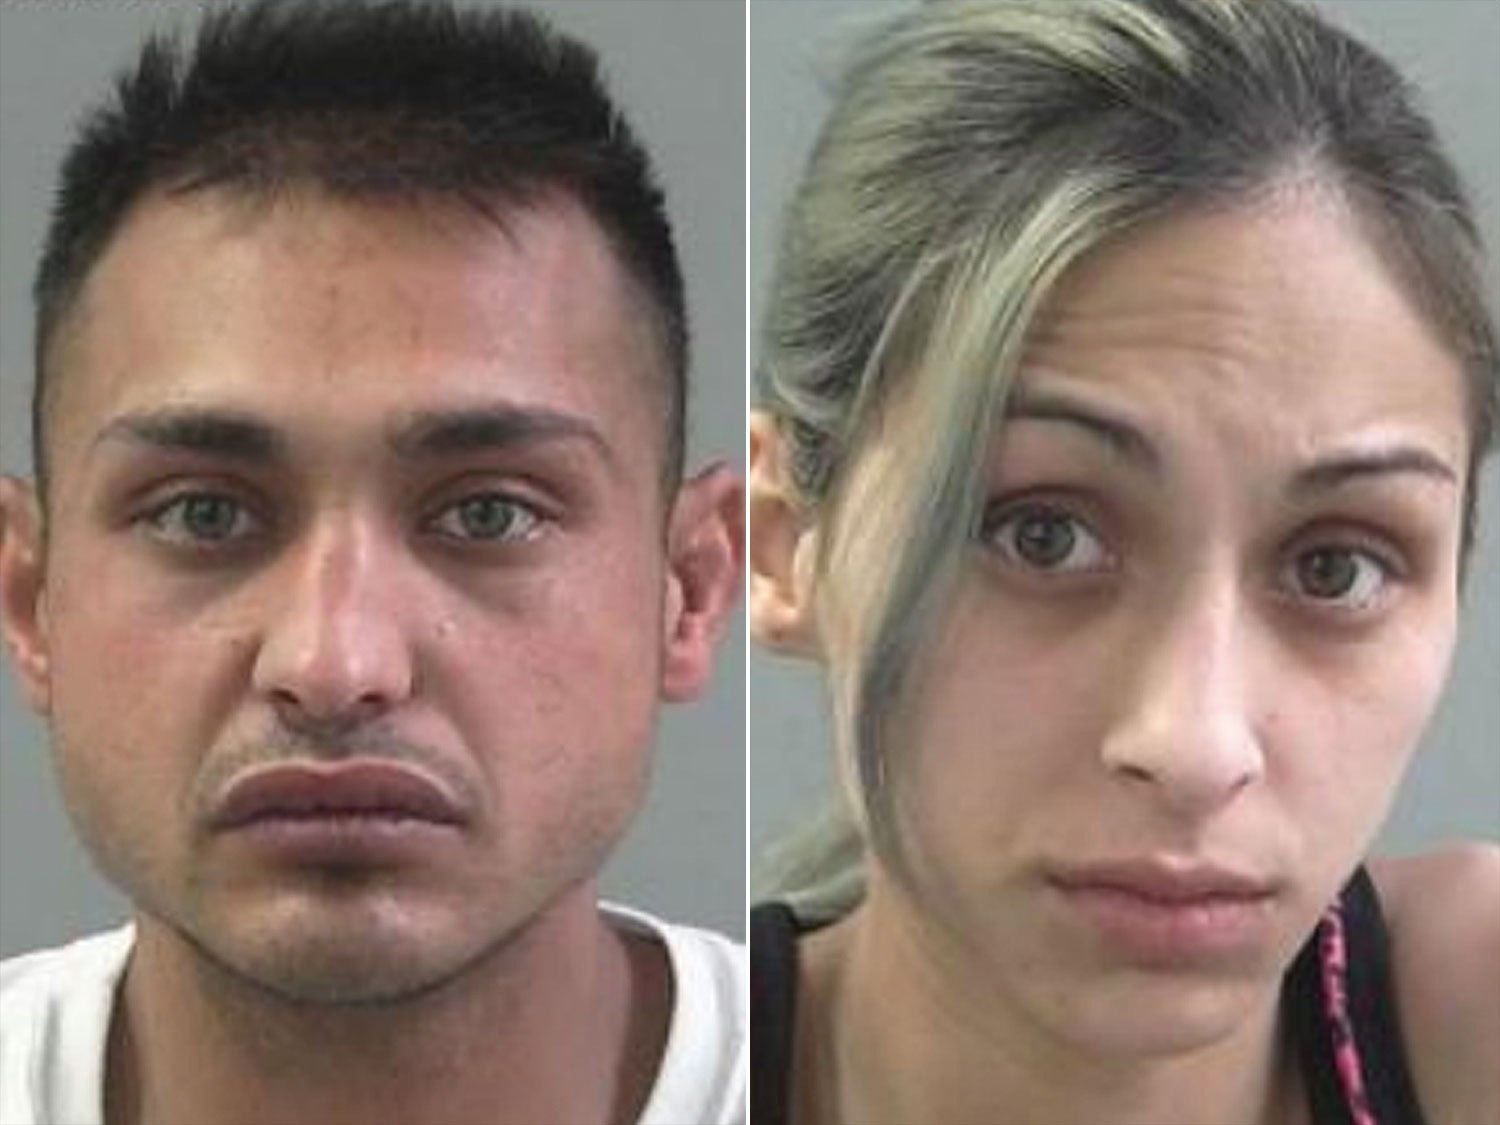 Utah Parents Taunted Toddler With Food While They Starved Her To Death